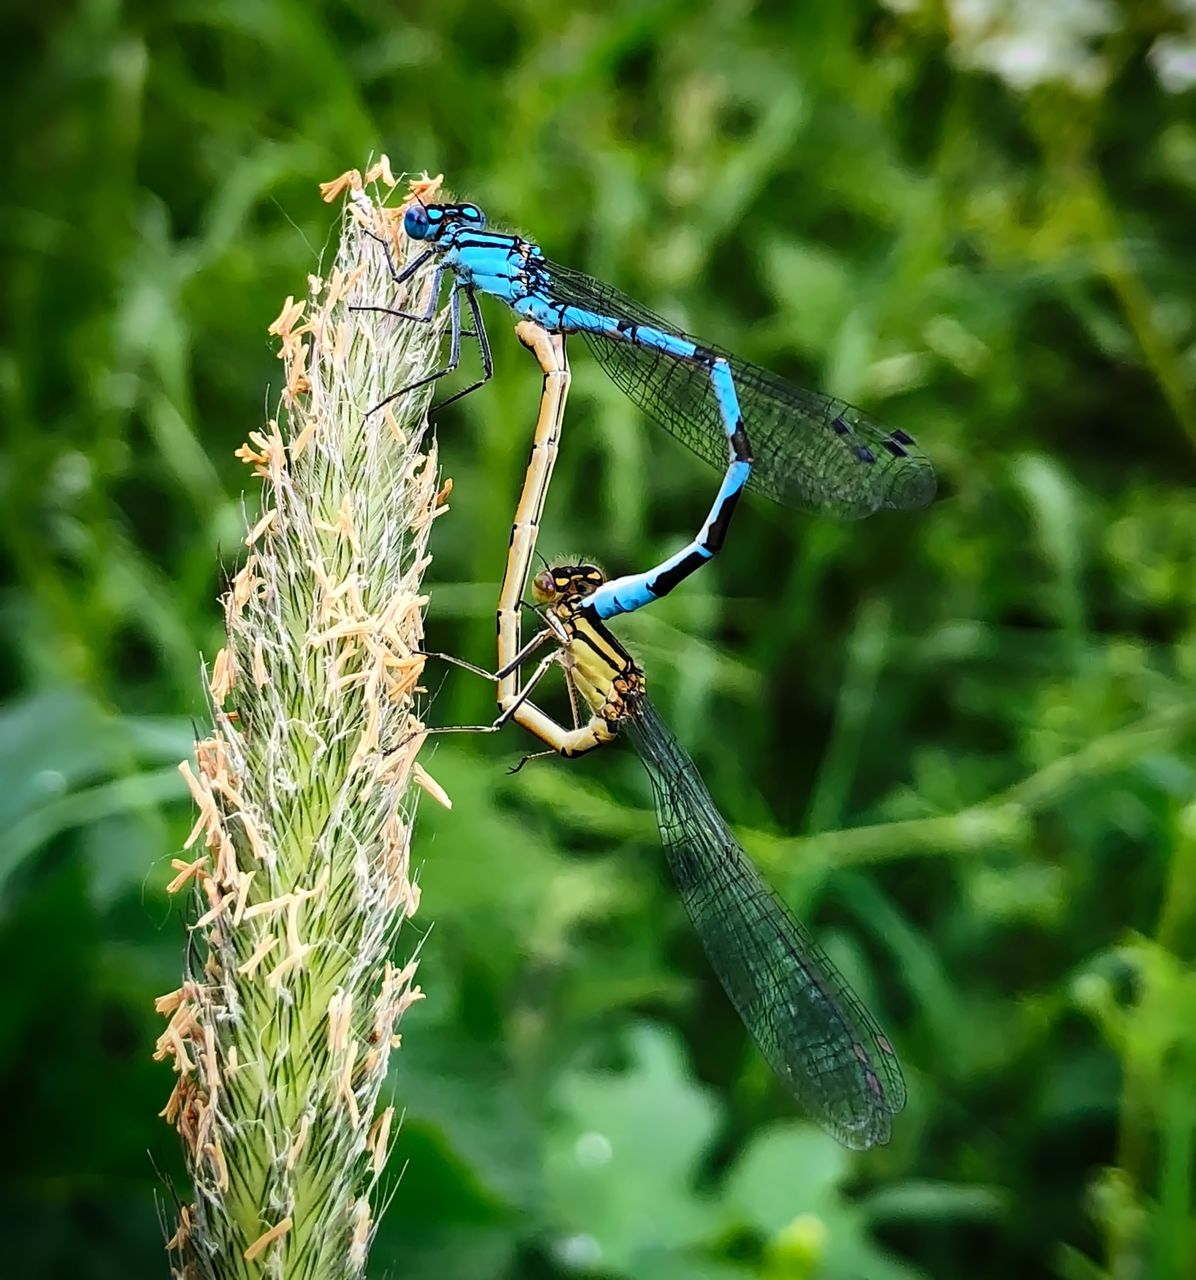 animal wildlife, animals in the wild, animal themes, insect, animal, invertebrate, plant, one animal, focus on foreground, close-up, green color, day, no people, nature, animal wing, outdoors, damselfly